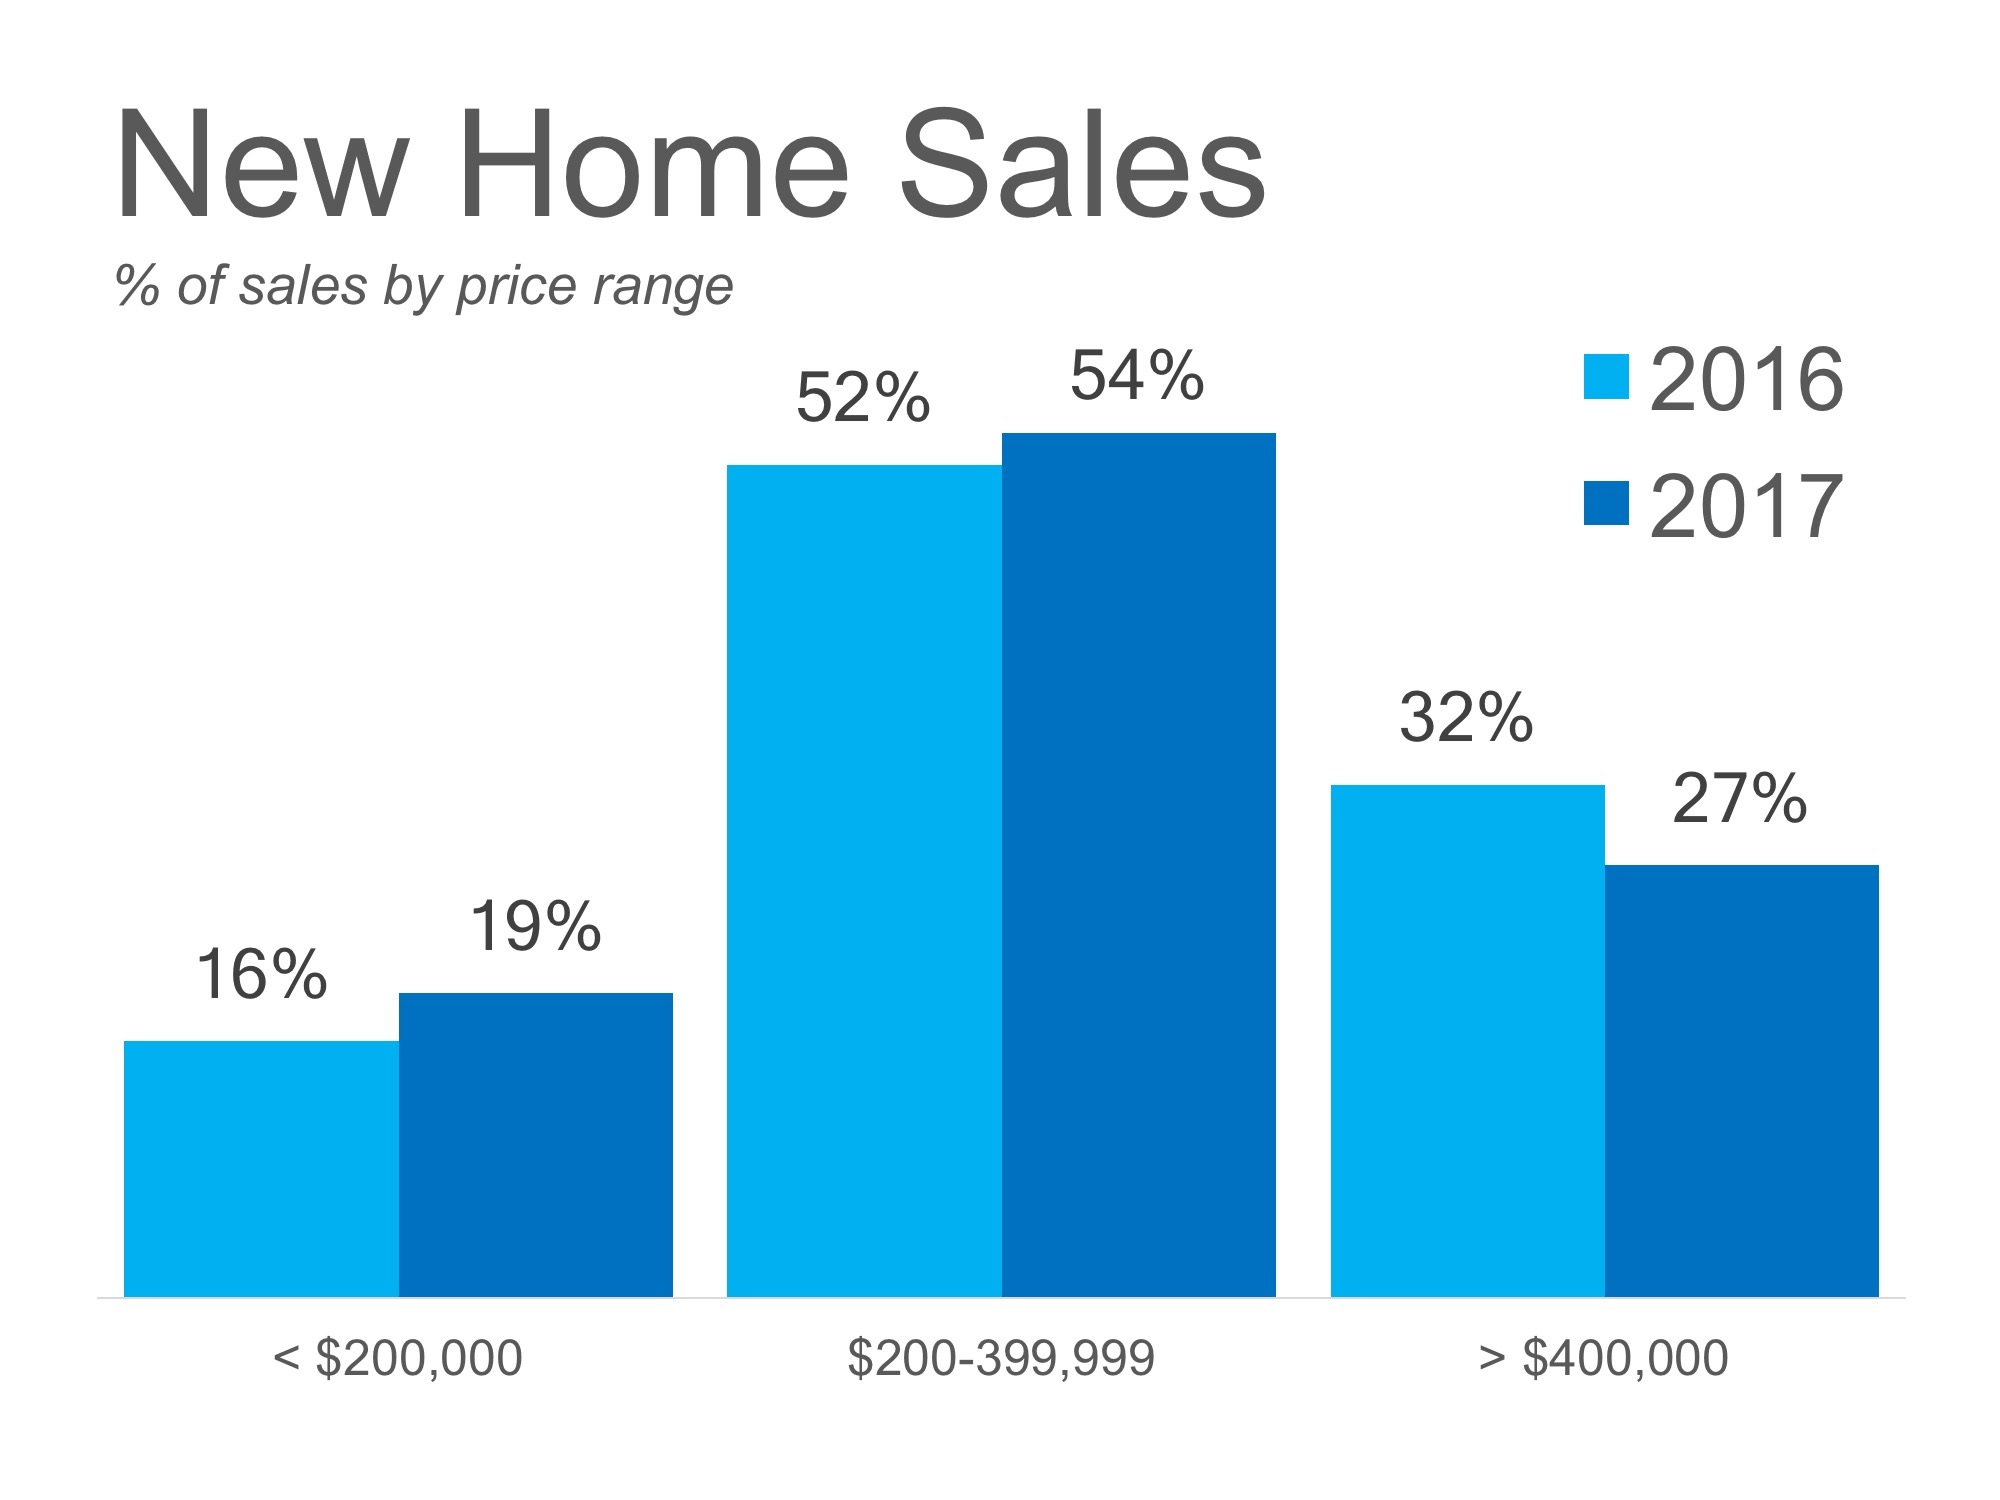 New-Home-Sales-Harford County MD